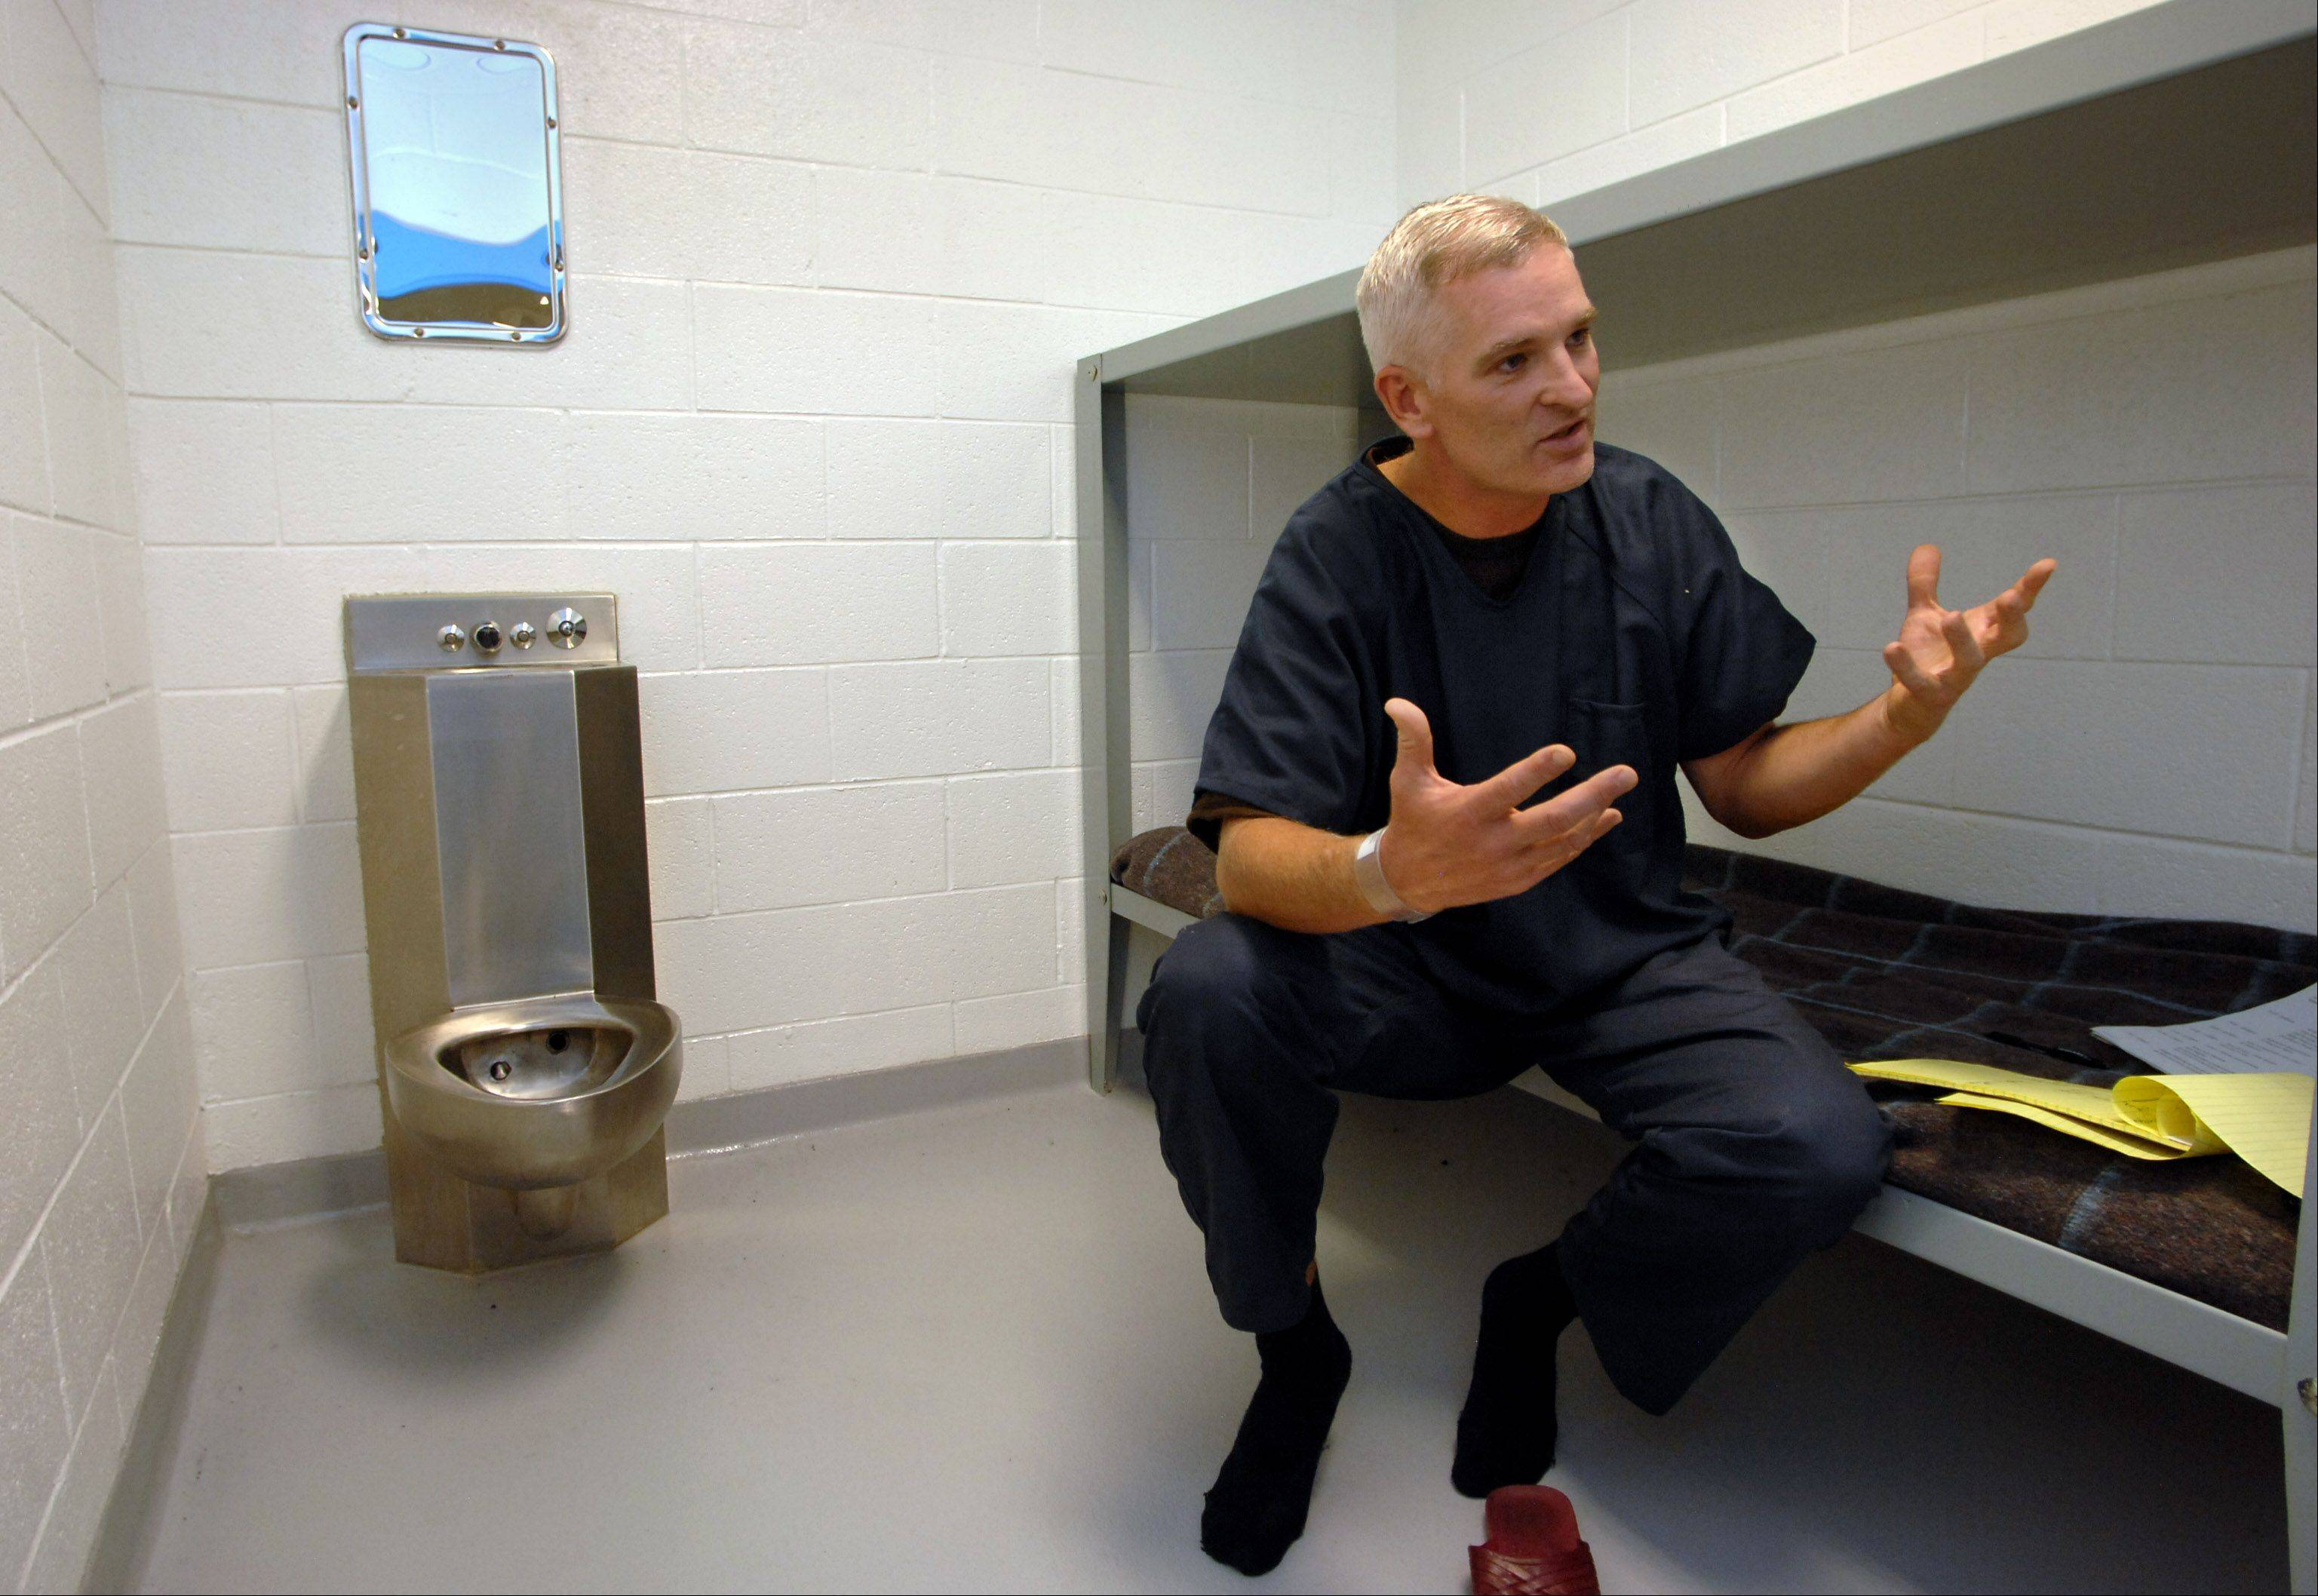 Lake County jail inmates will receive medical services from a new company starting in 2014. Here, Lake County sheriff Mark Curran talks to the media during his self-imposed 2008 stay in the jail.